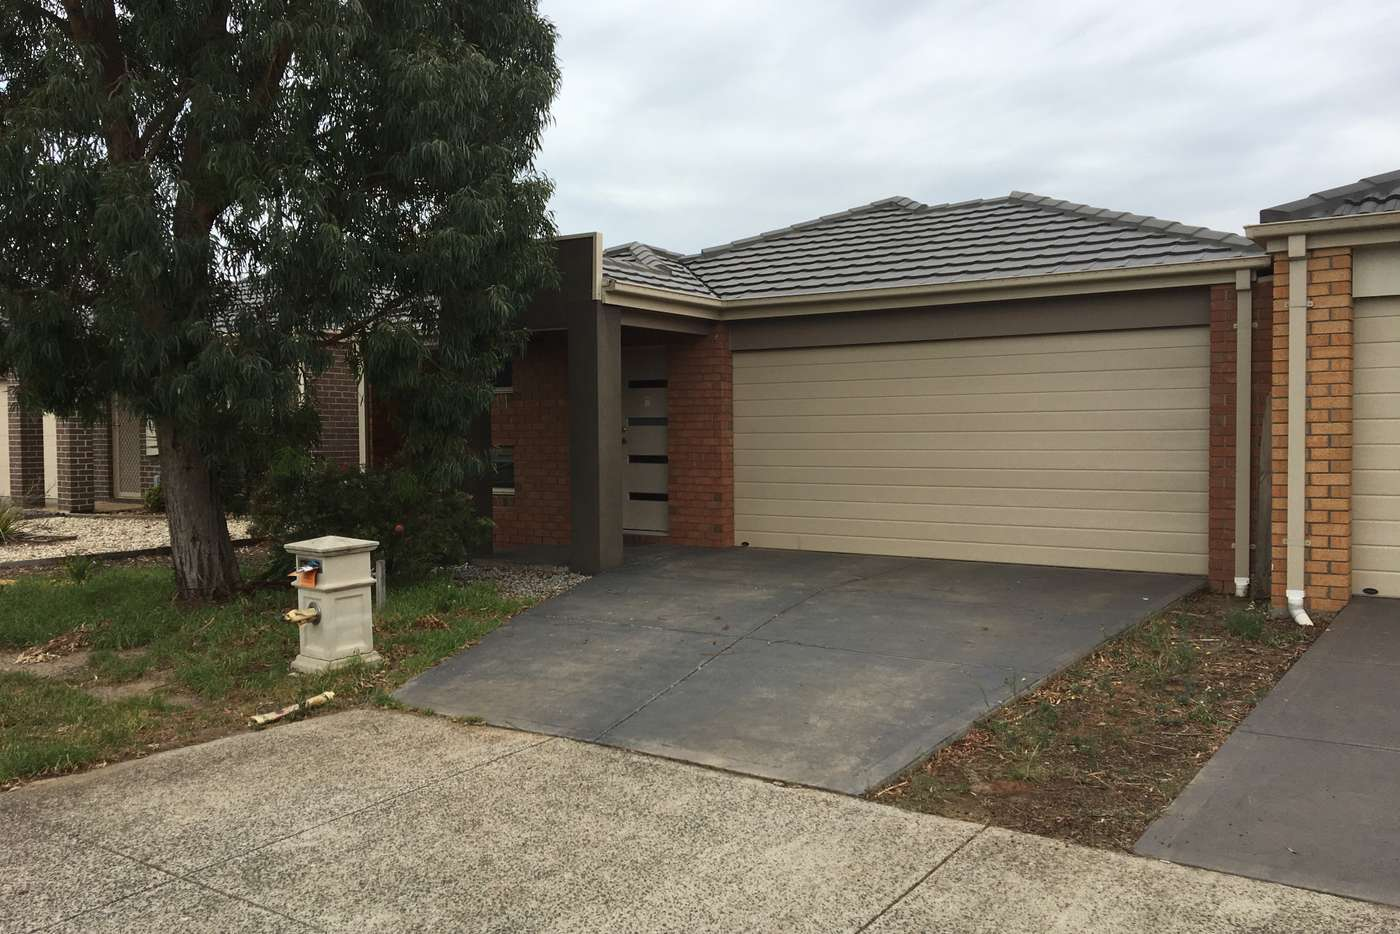 Main view of Homely house listing, 47 Tyler Crescent, Tarneit VIC 3029